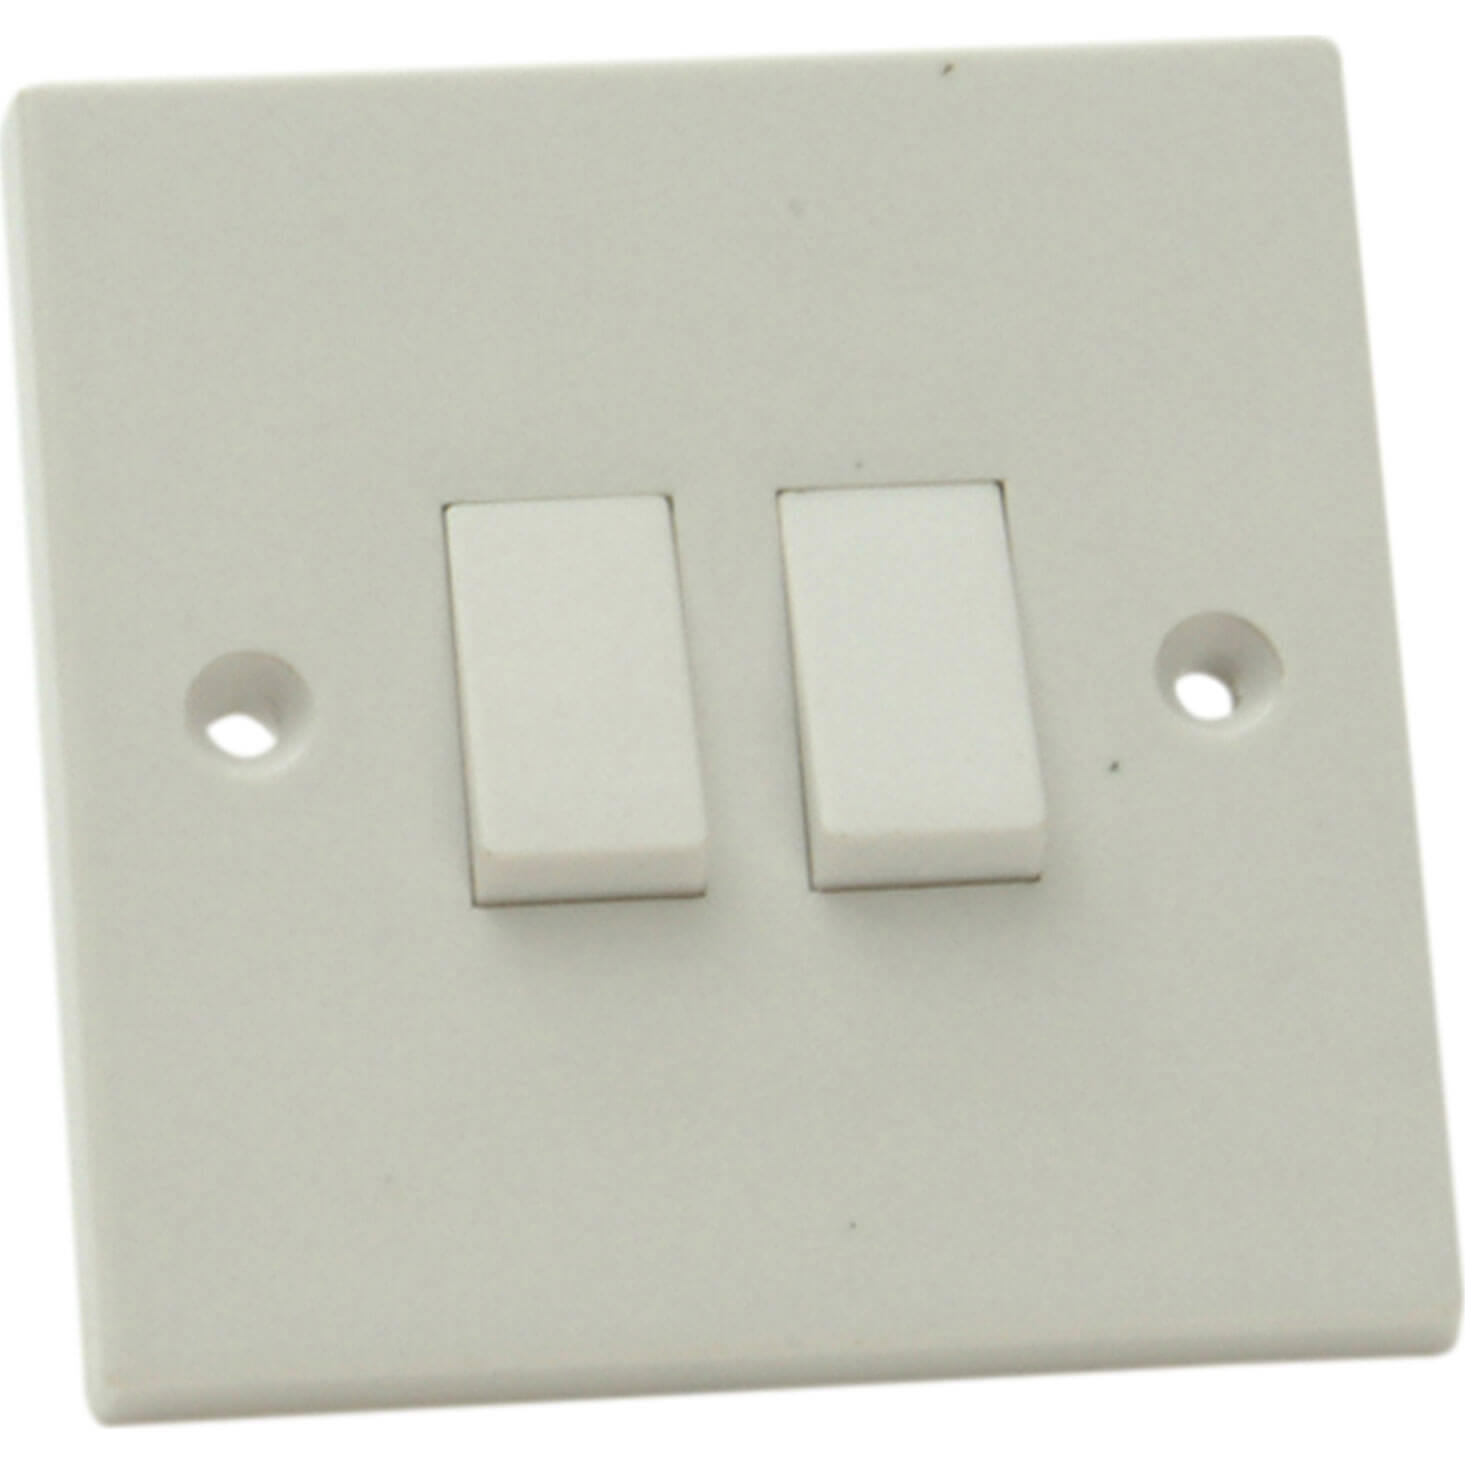 Smj 2 Gang 2 Way Light Switch